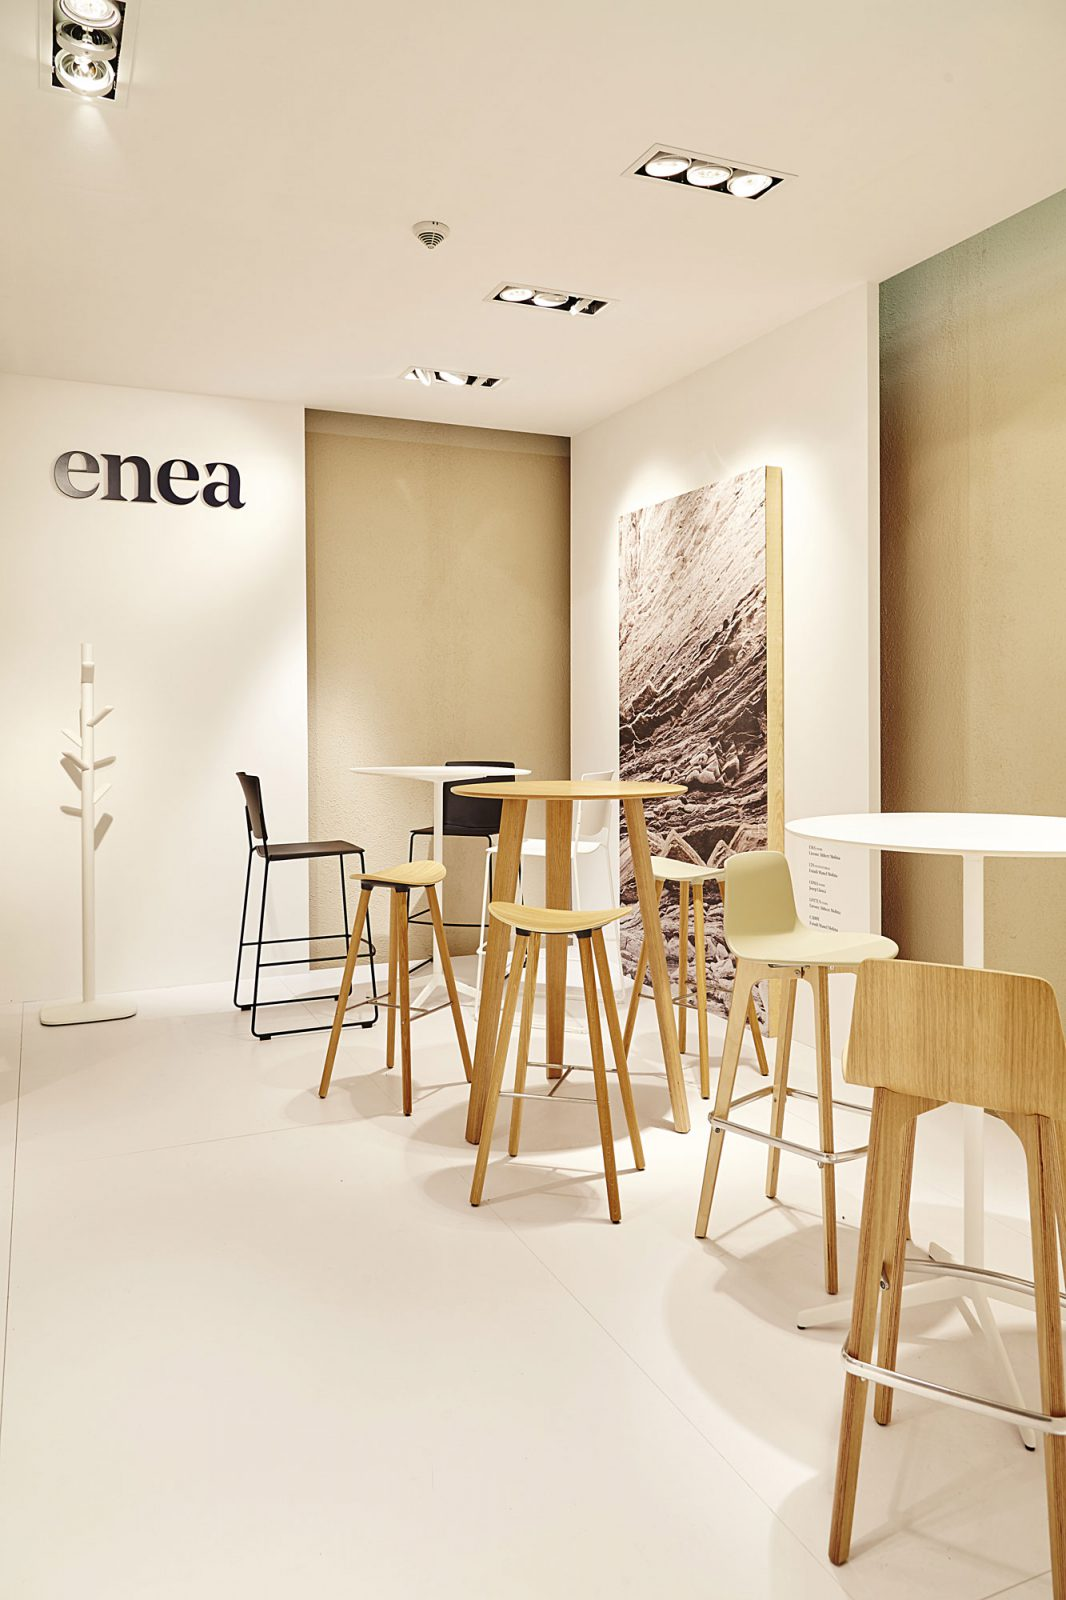 Lottus wood chair by enea design lievore altherr molina - Enea S Experience At Orgatec 2016 New Visions Of Work